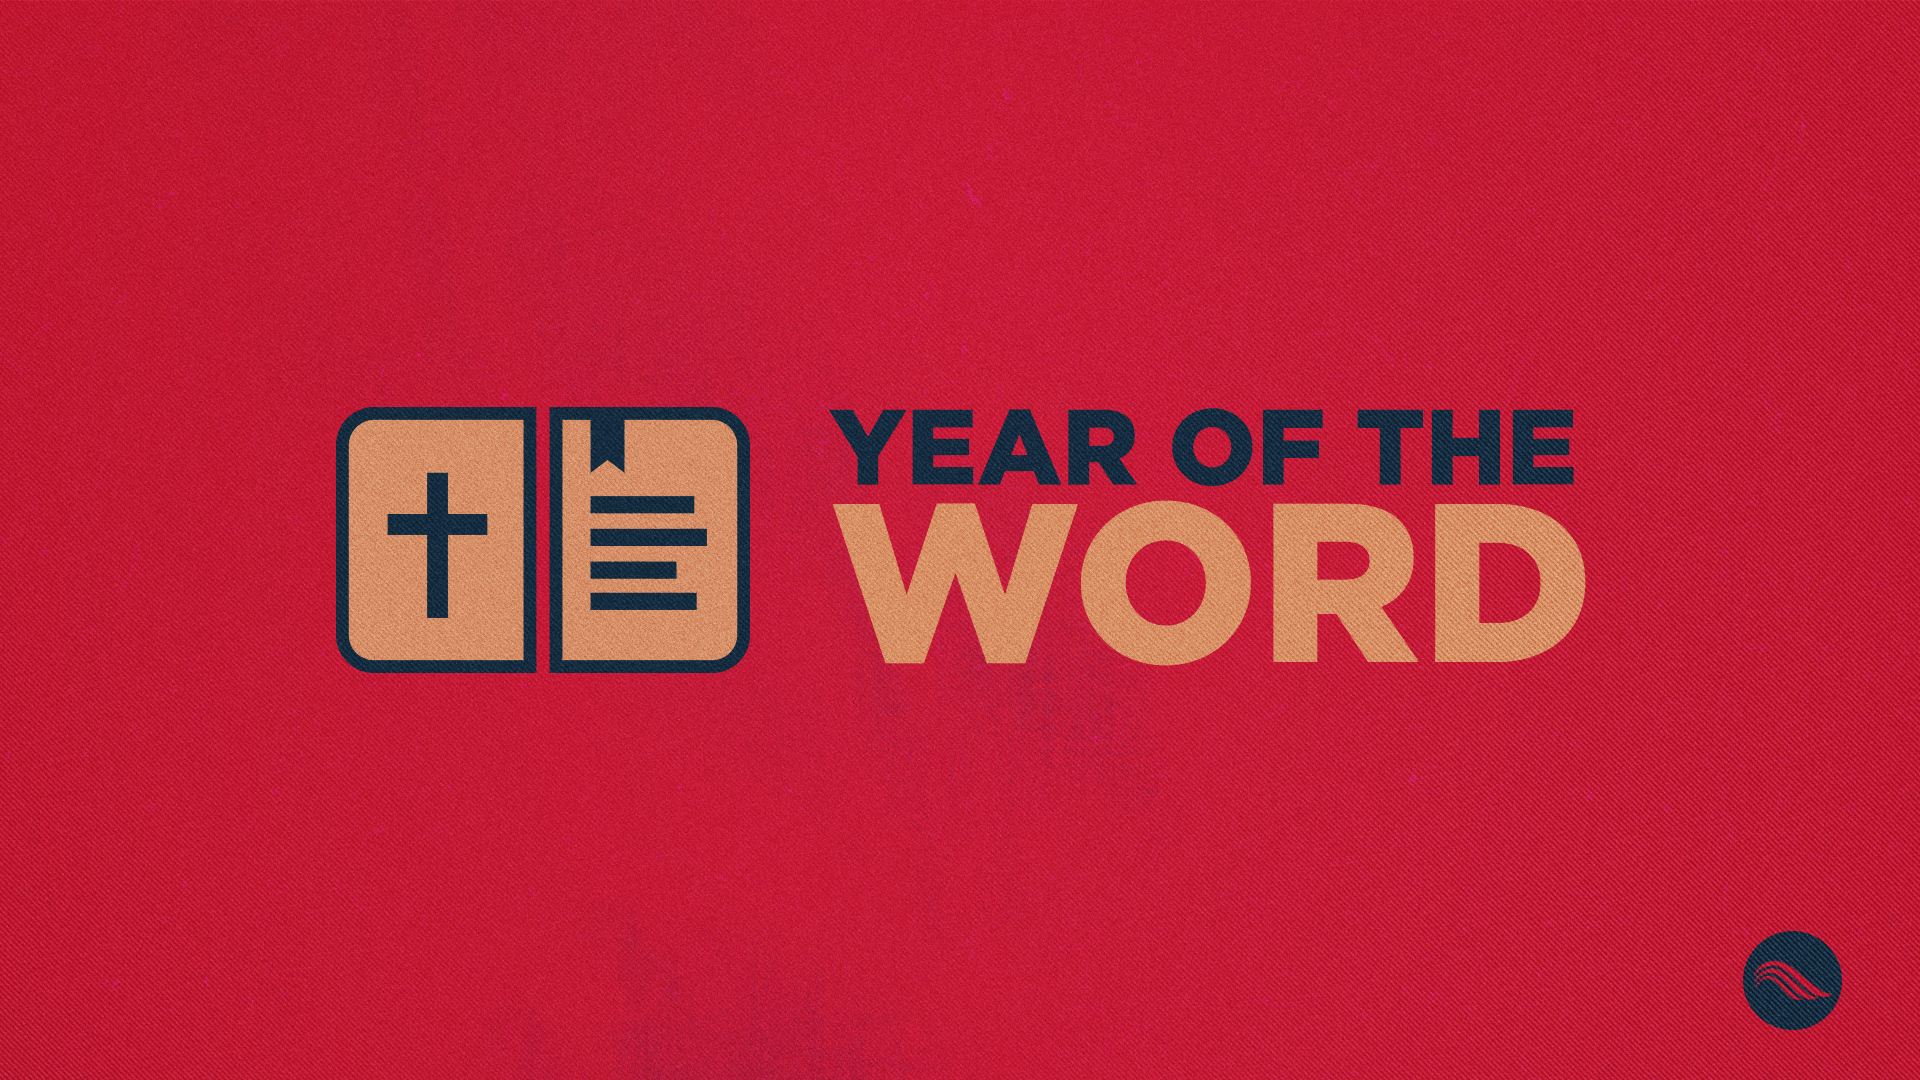 Year of The Word_16x9.jpg